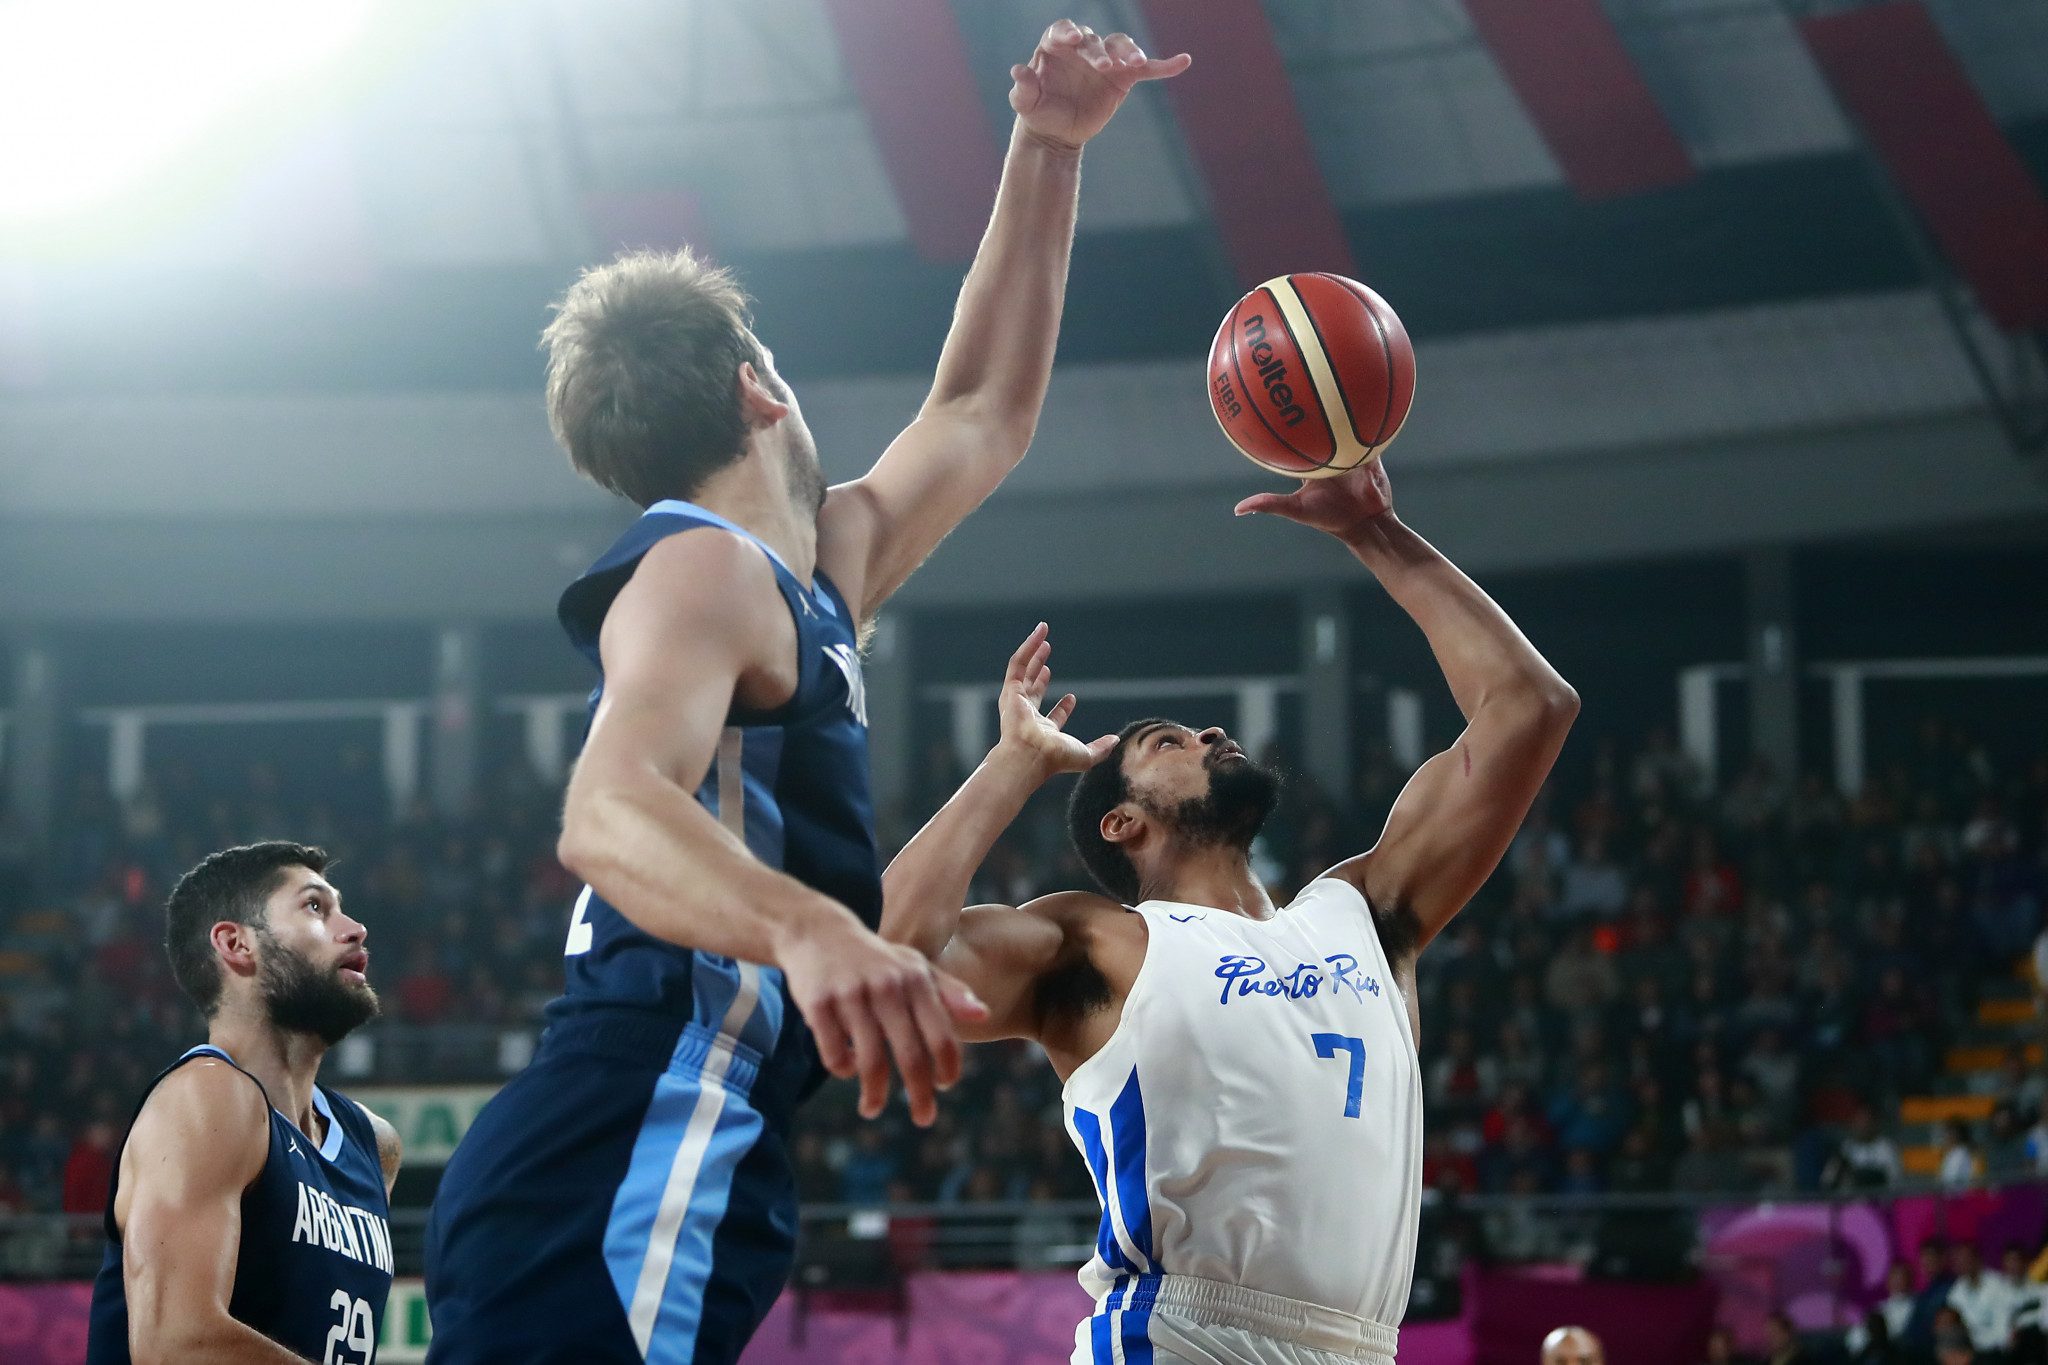 Argentina defeat Puerto Rico to claim Lima 2019 men's basketball gold